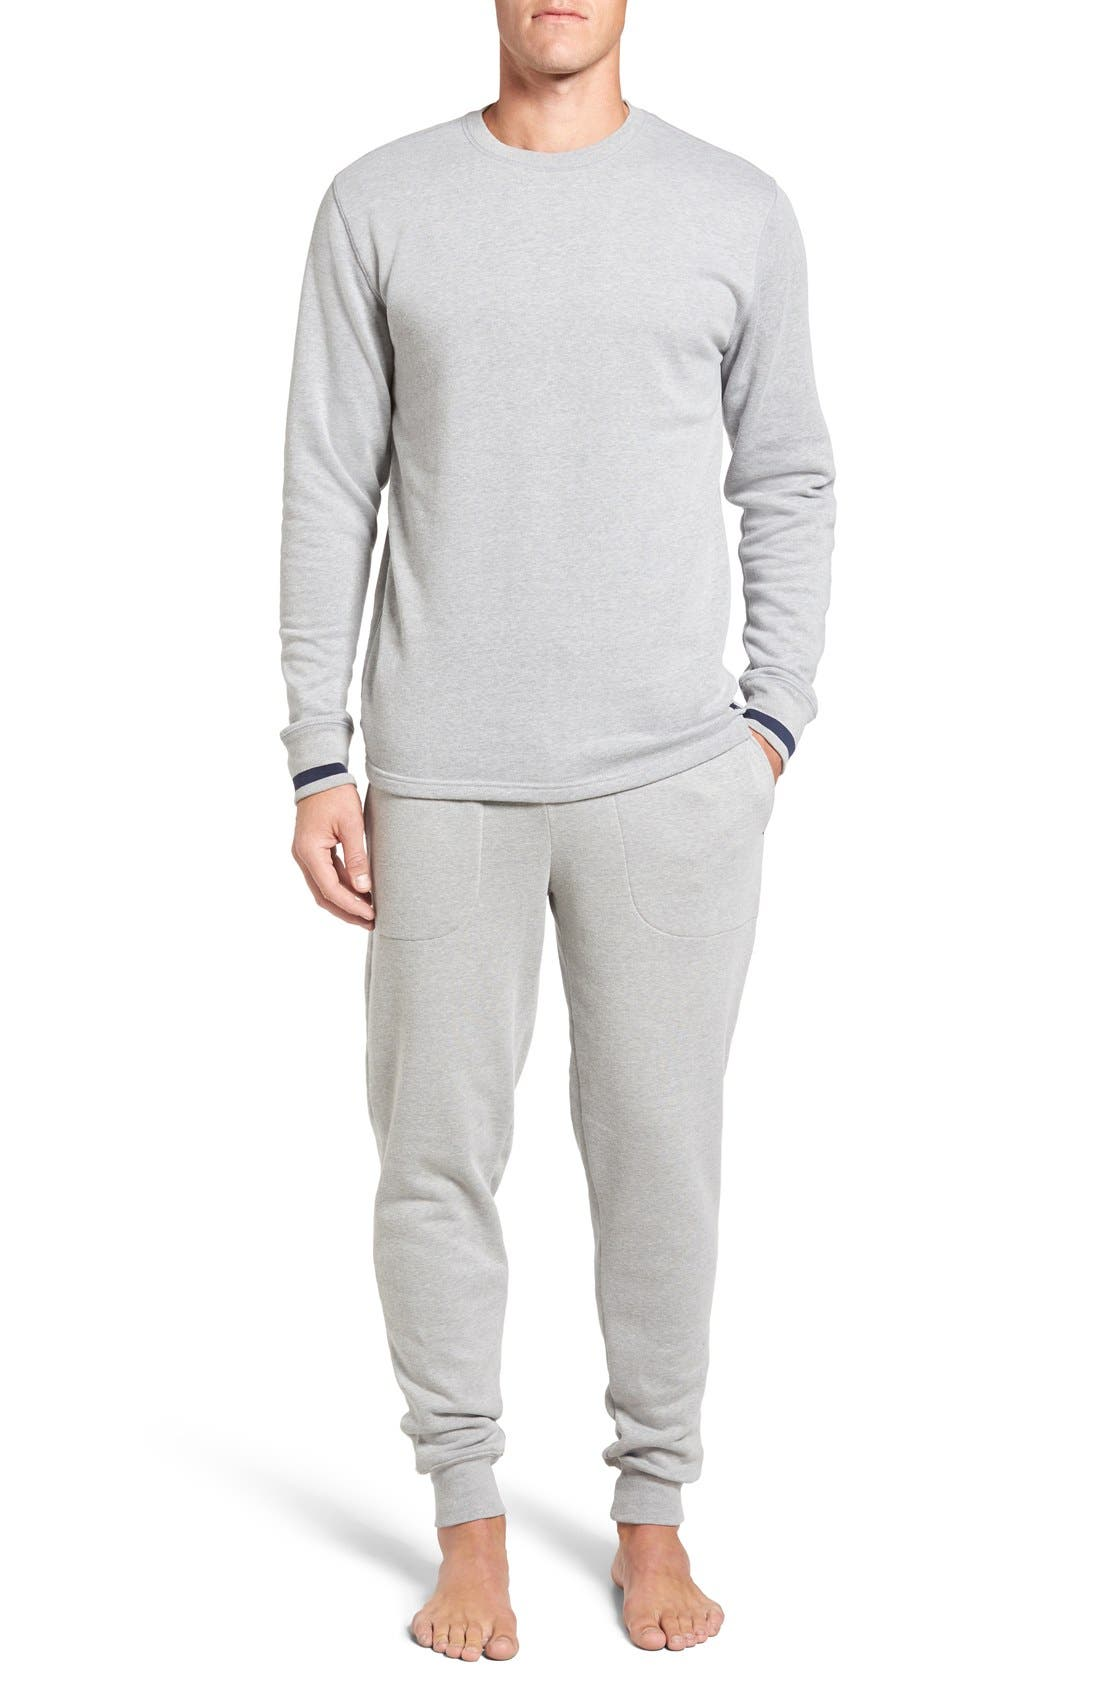 Brushed Jersey Cotton Blend Crewneck Sweatshirt,                             Alternate thumbnail 6, color,                             Andover Heather Grey